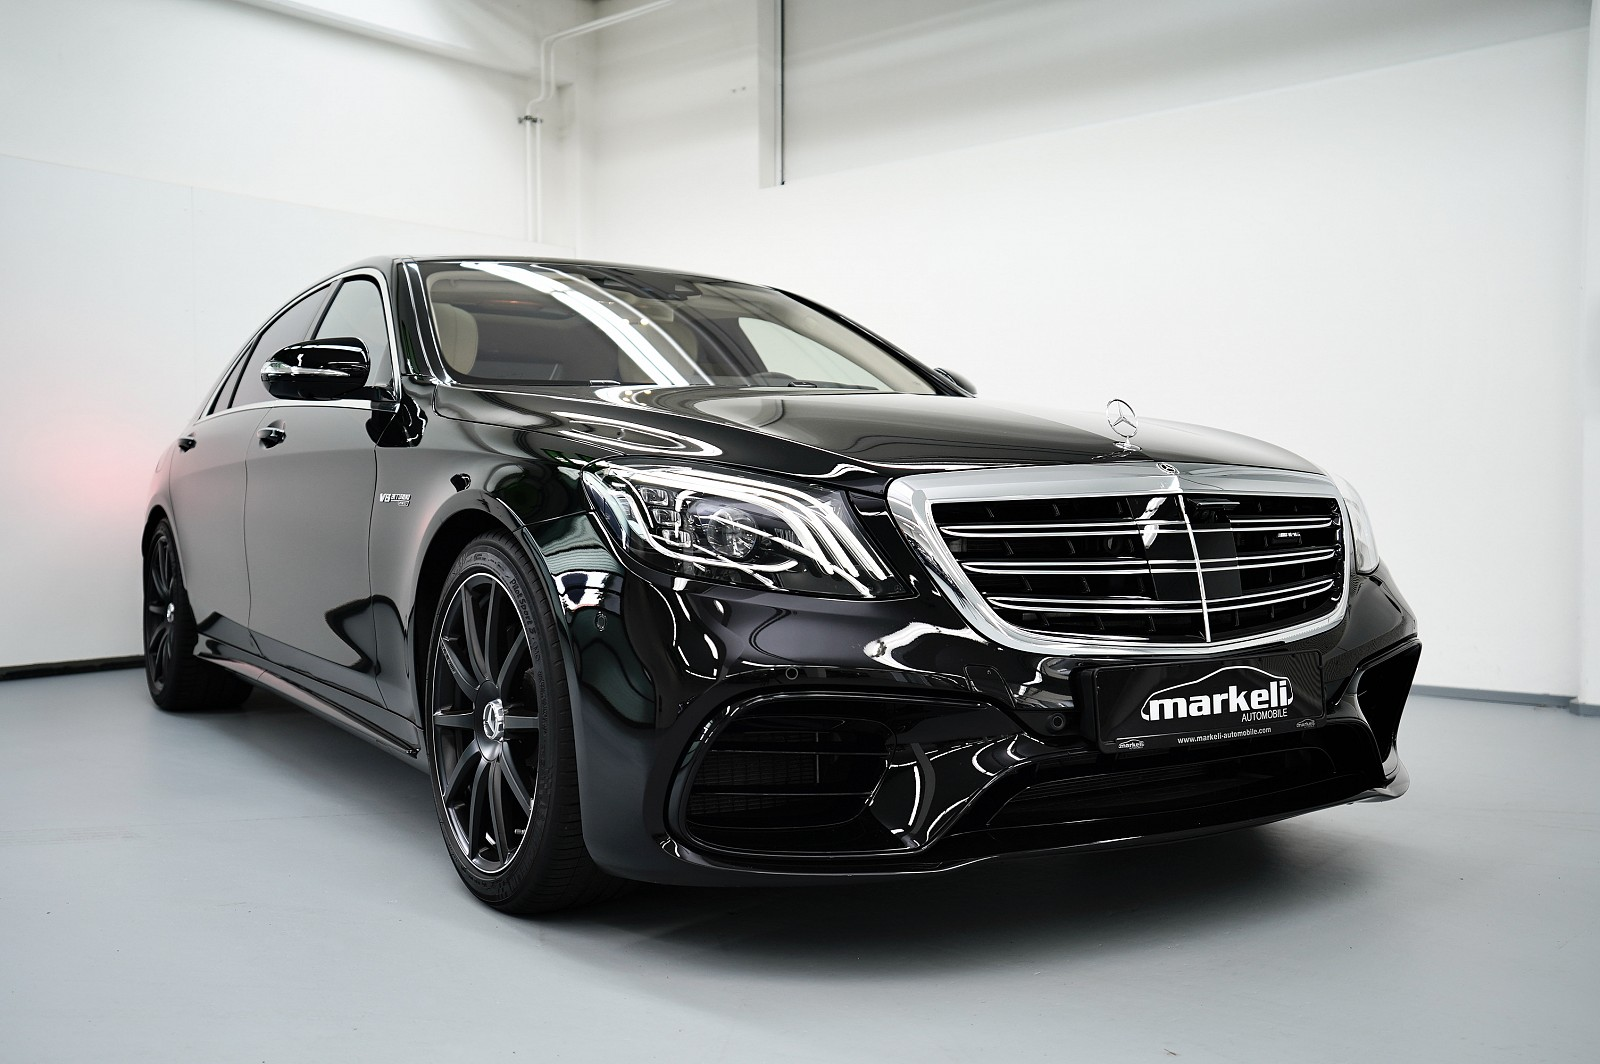 Mercedes-amg S 63 4matic+ Lang  AMG EXKLUSIV-PAKET&drivers package + burmester high-end 3d